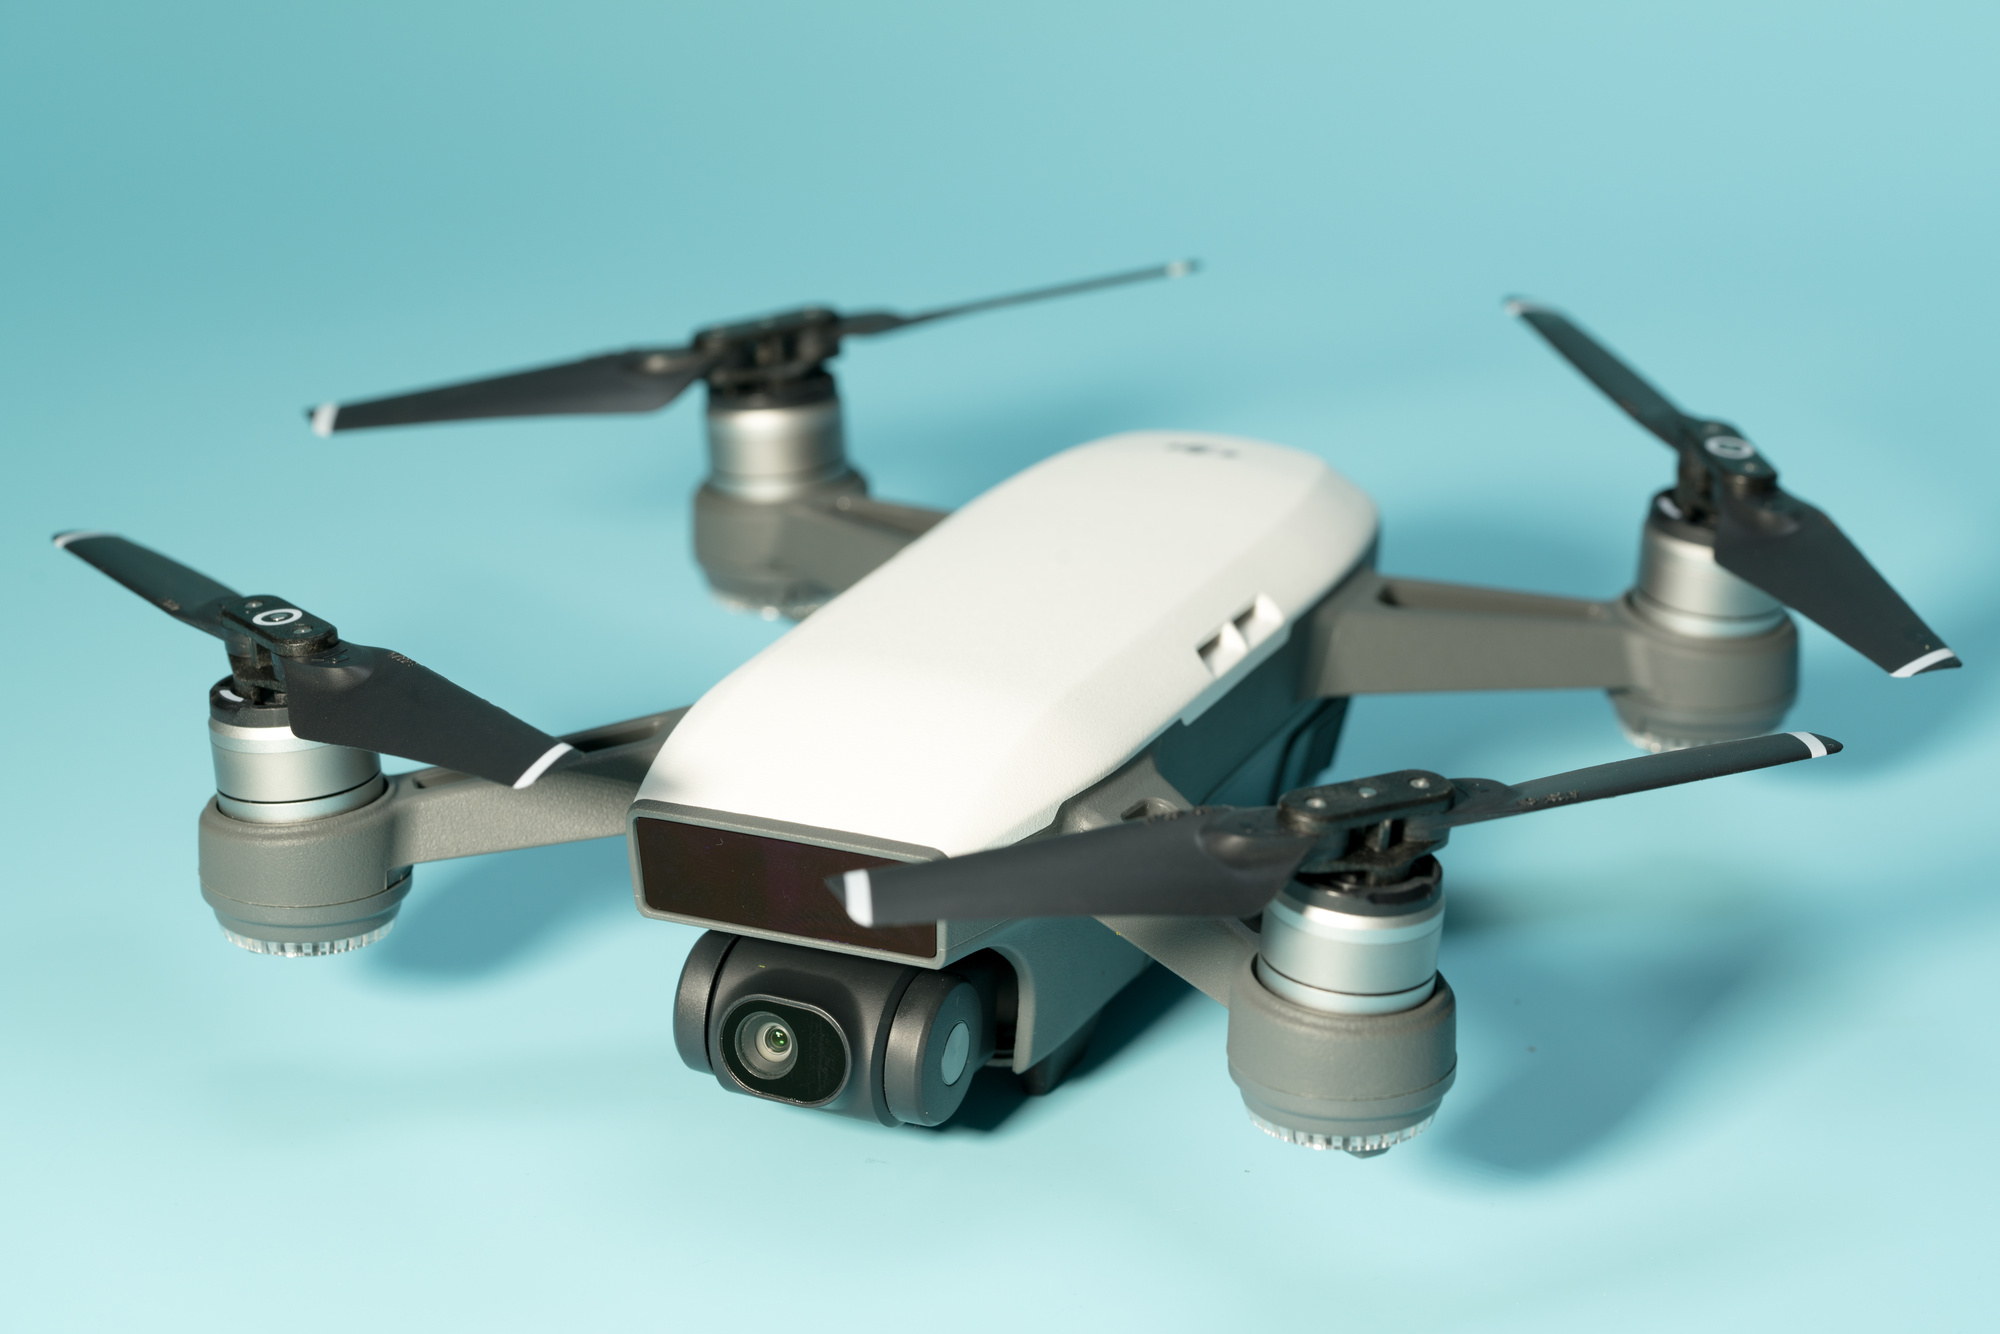 A Guide To The DJI Spark Drone